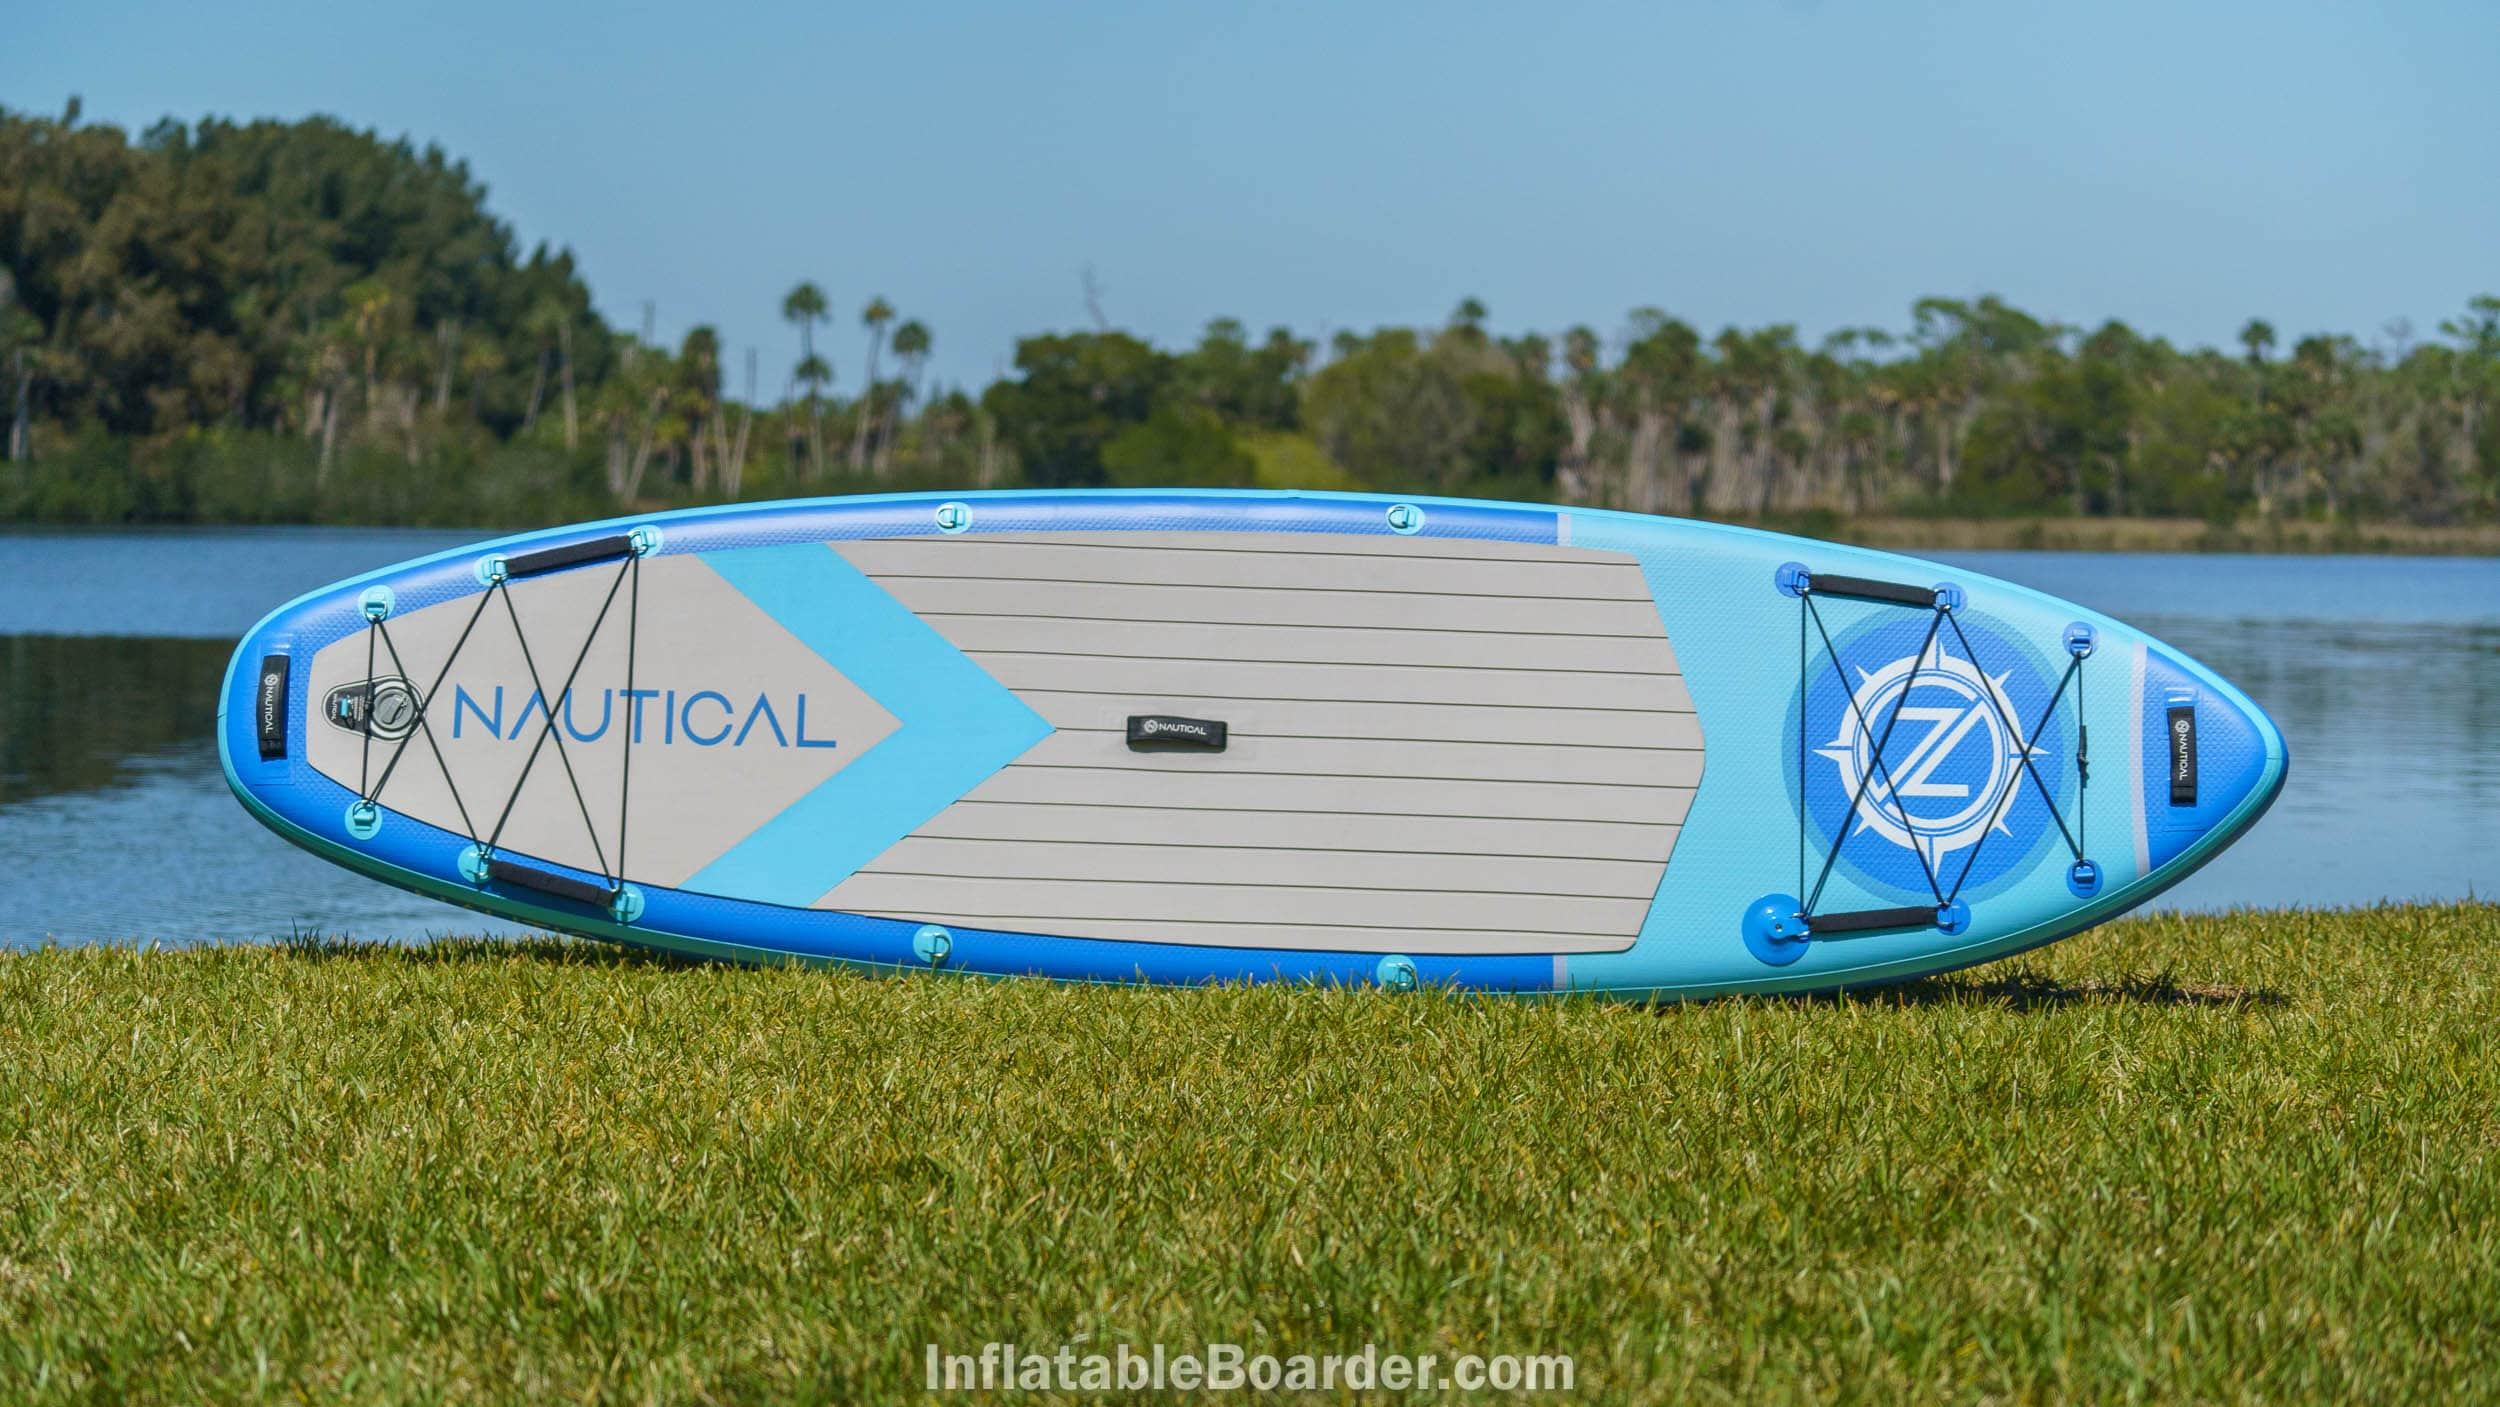 """2021 NAUTICAL 10'6"""" board overview in blue color."""